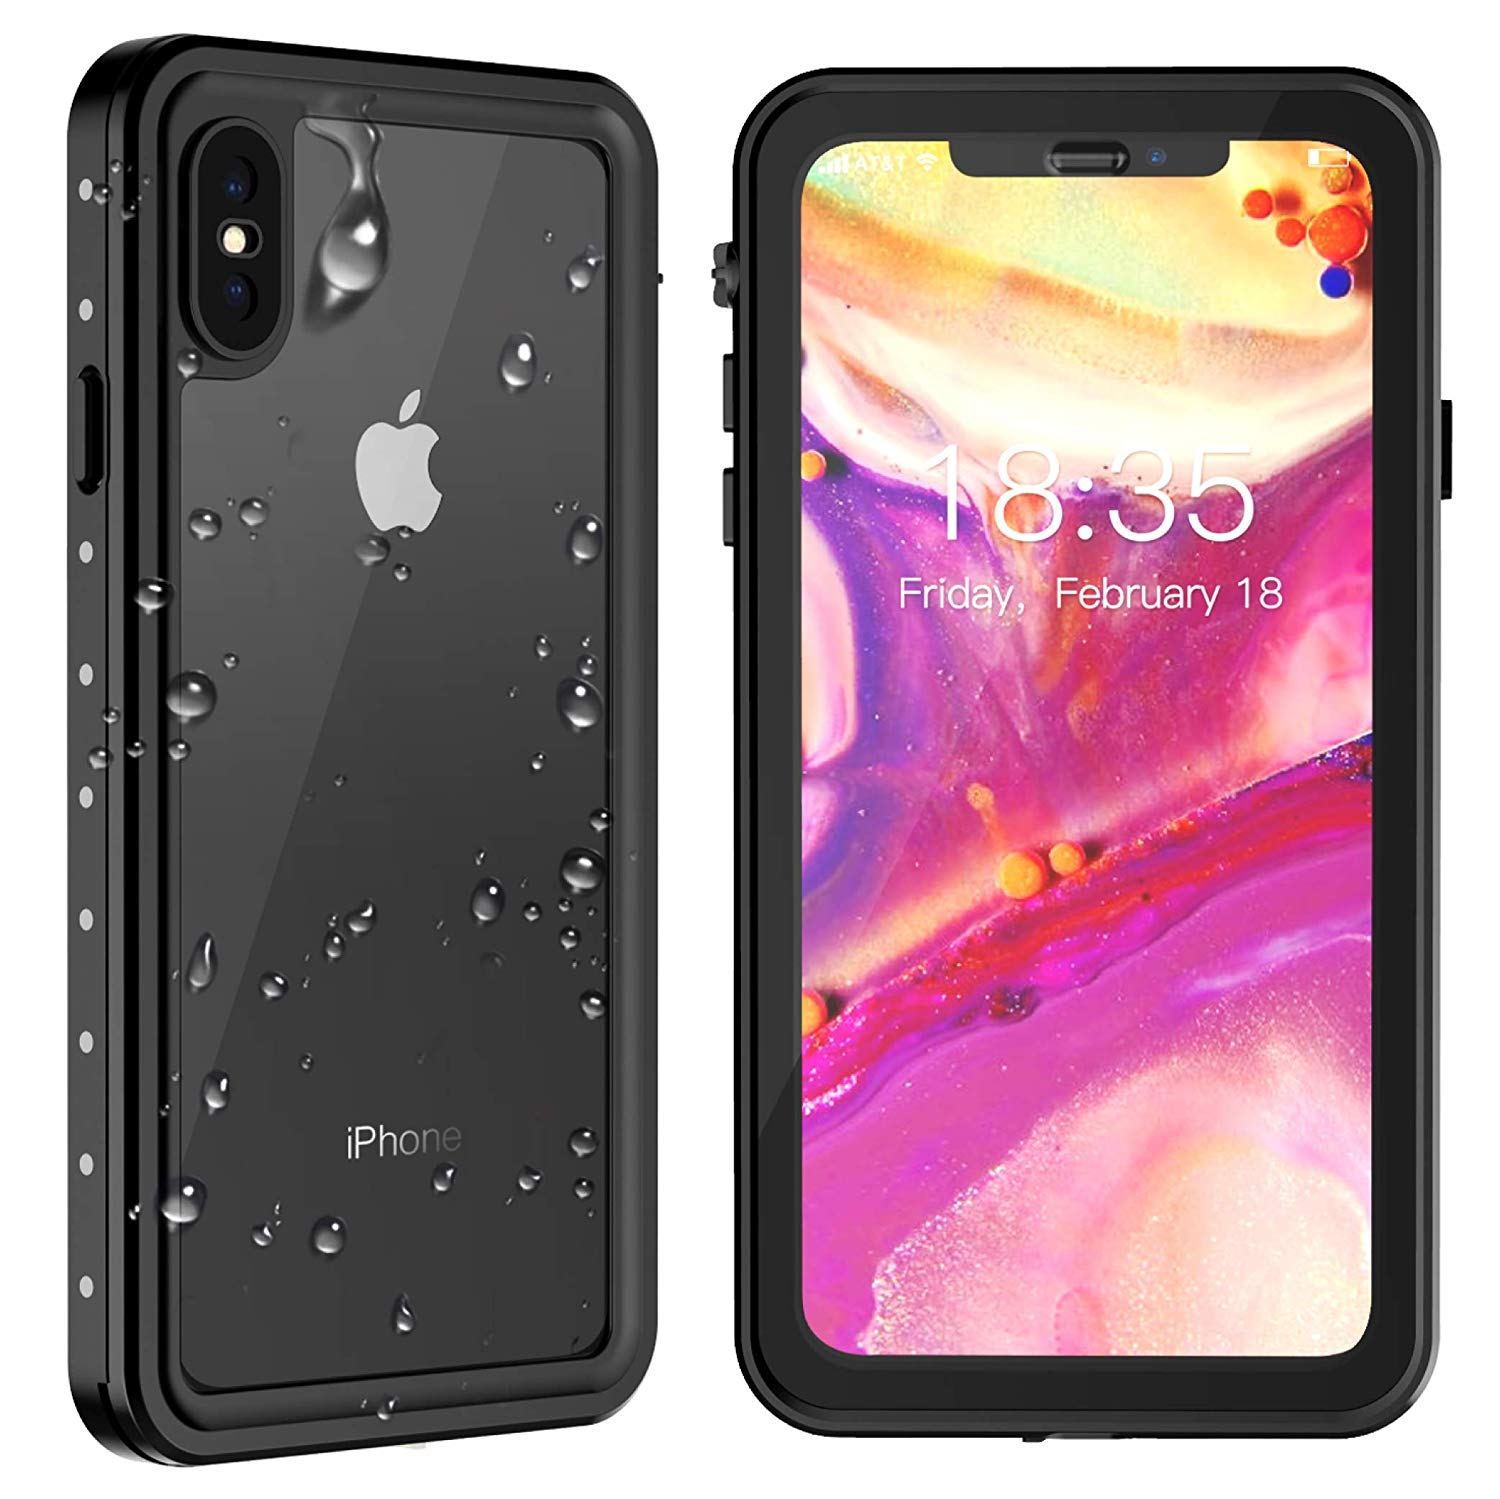 ae8528d00608e0 Top 10 Best iPhone x waterproof cases in 2019 review